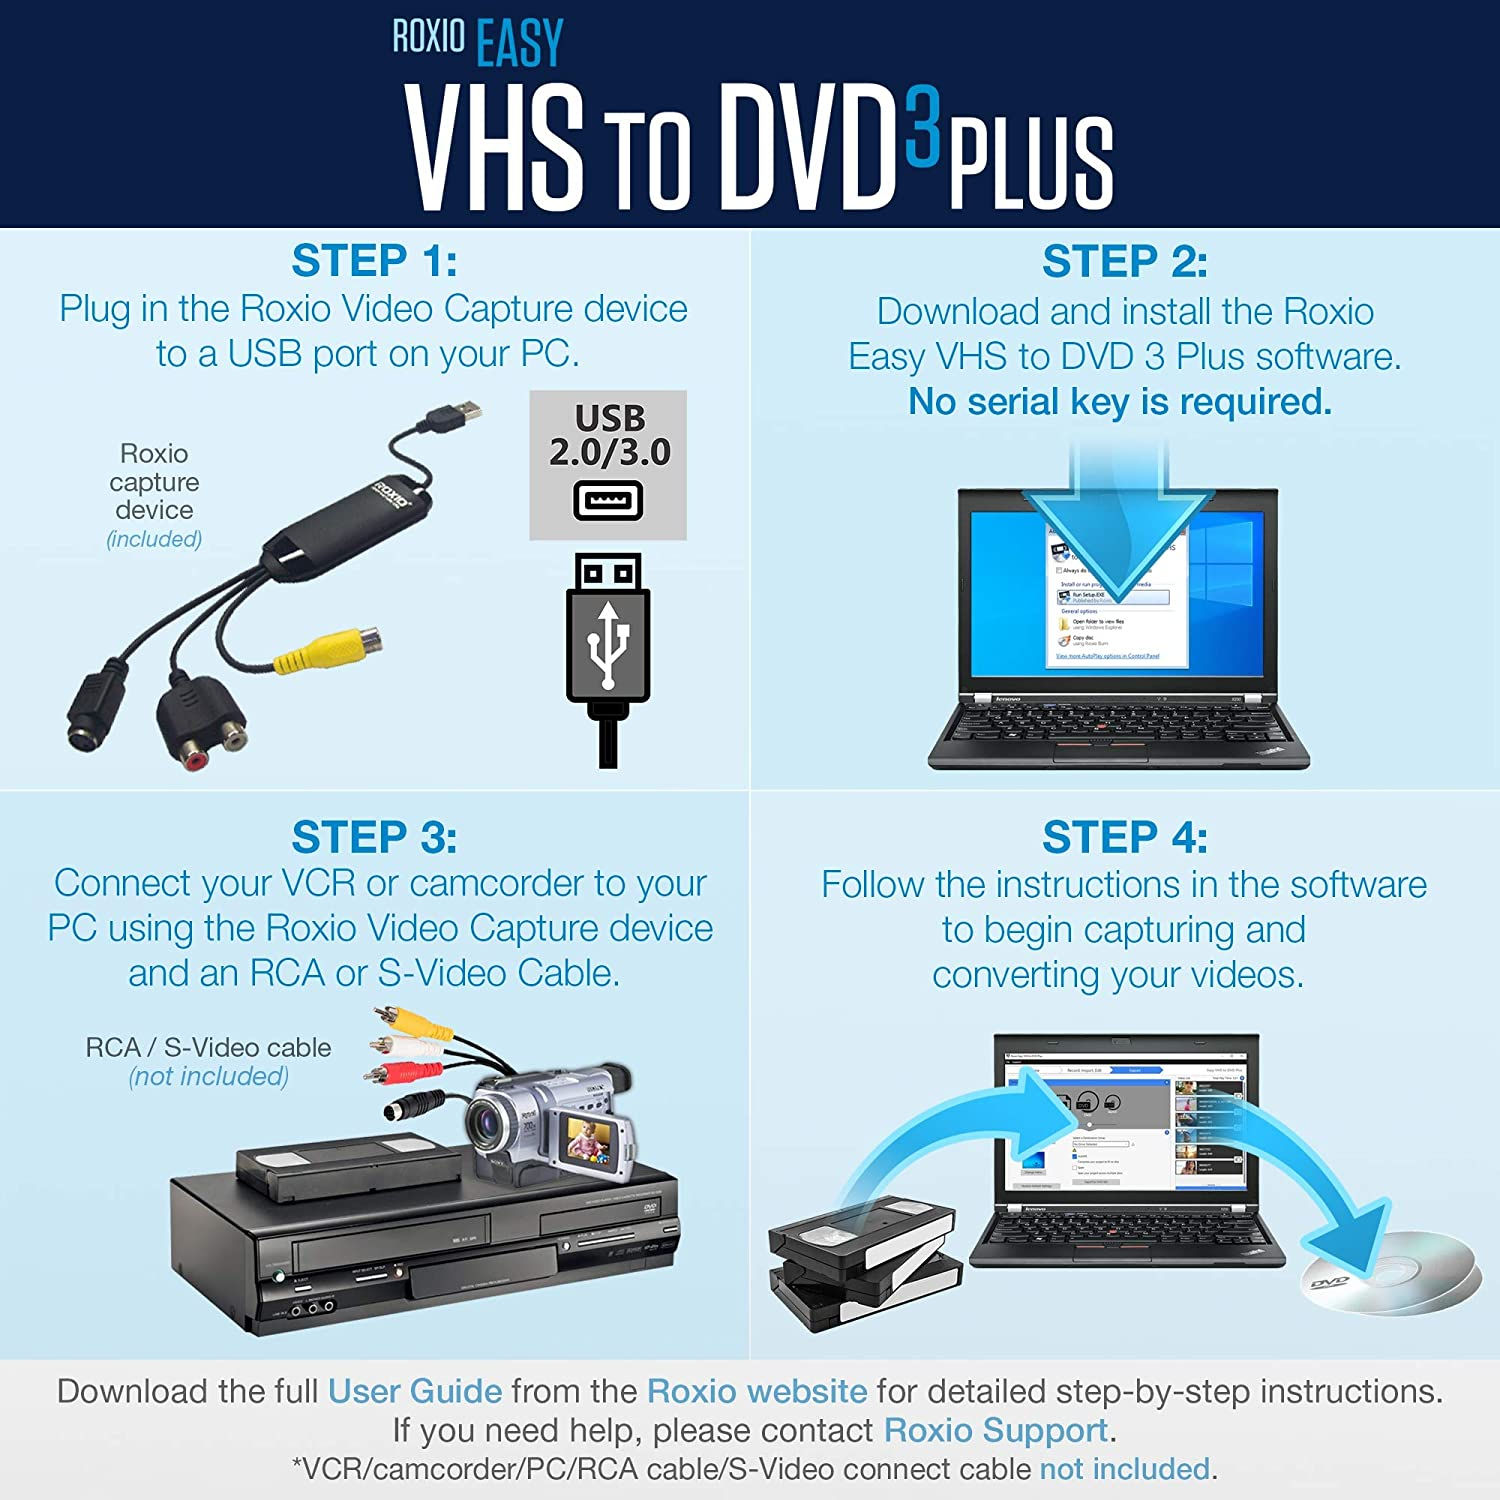 Roxio Easy Vhs To Dvd 3 Plus Vhs Hi8 V8 Video To Dvd Or Digital Converter Amazon Exclusive 2 Bonus Dvds Software